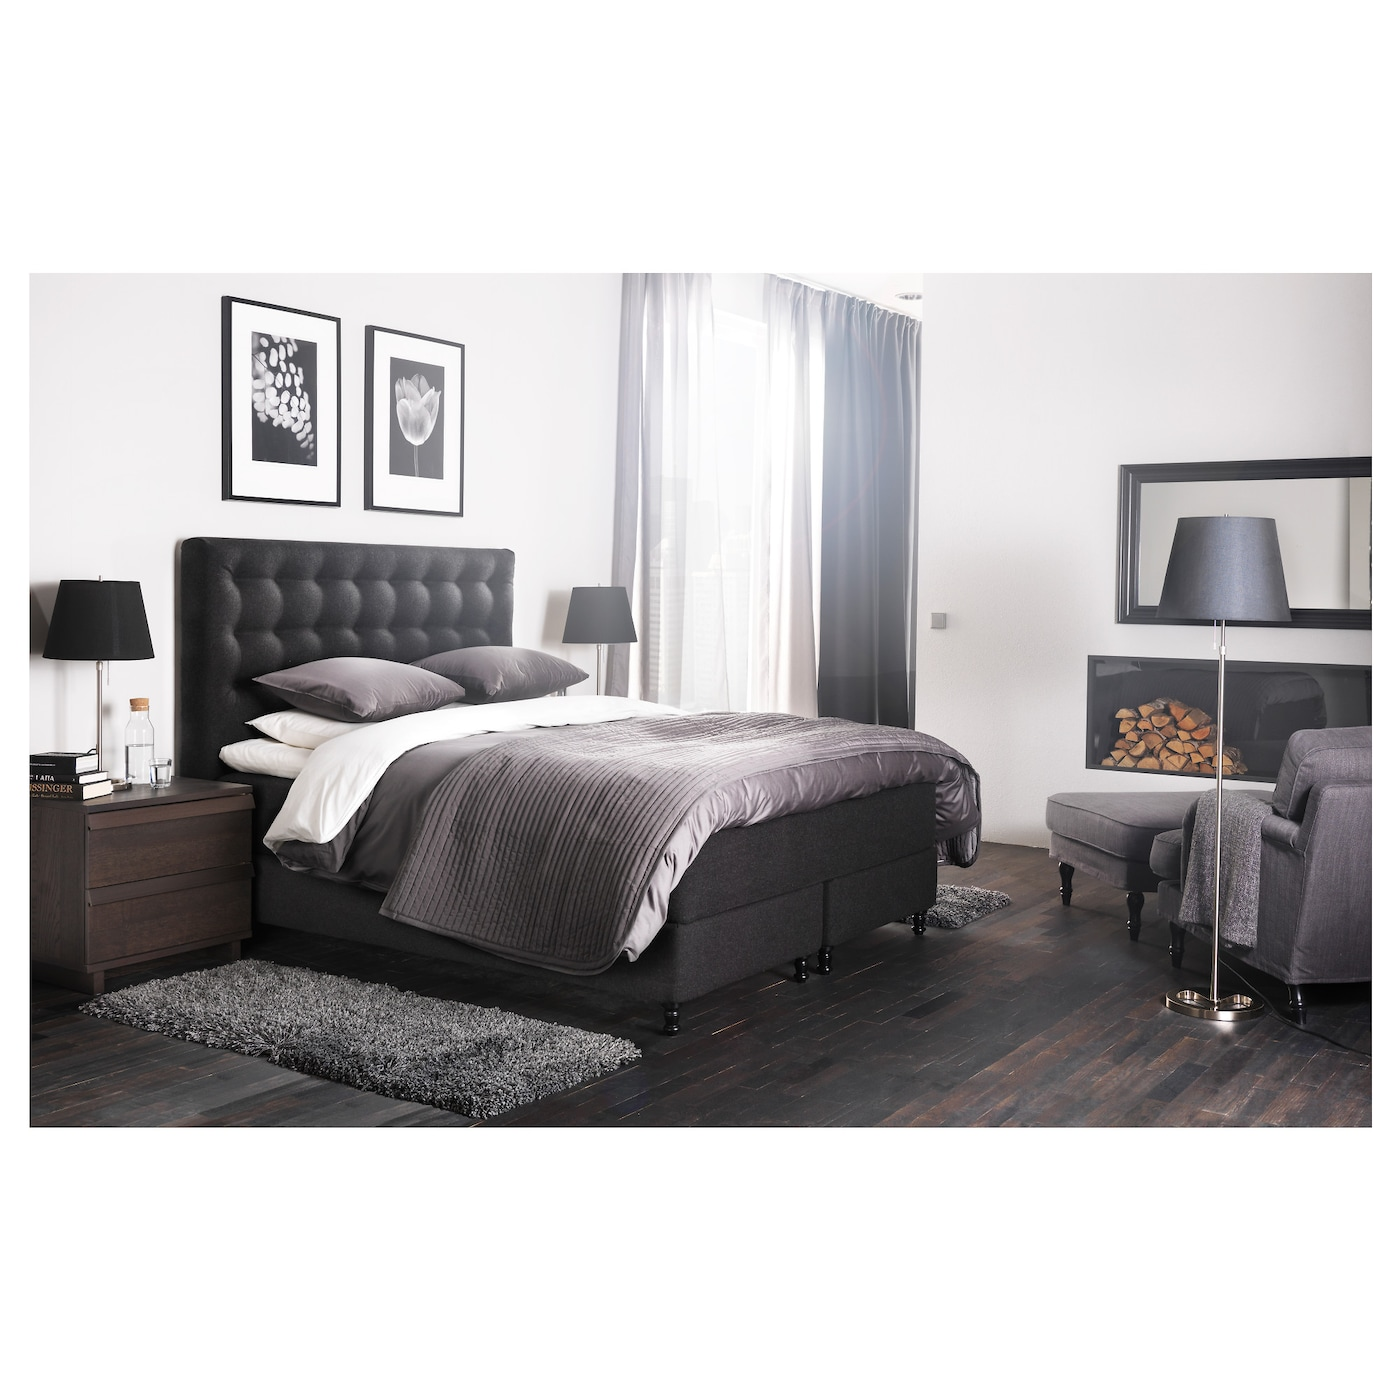 vallavik lit sommier hyllestad ferme tuss y gris 180x200. Black Bedroom Furniture Sets. Home Design Ideas